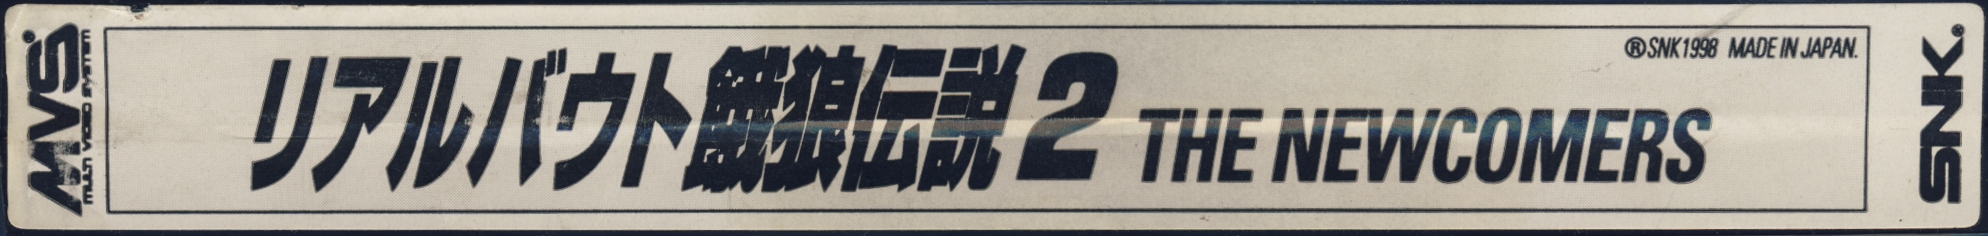 Real bout fatal fury 2 jp label.jpg